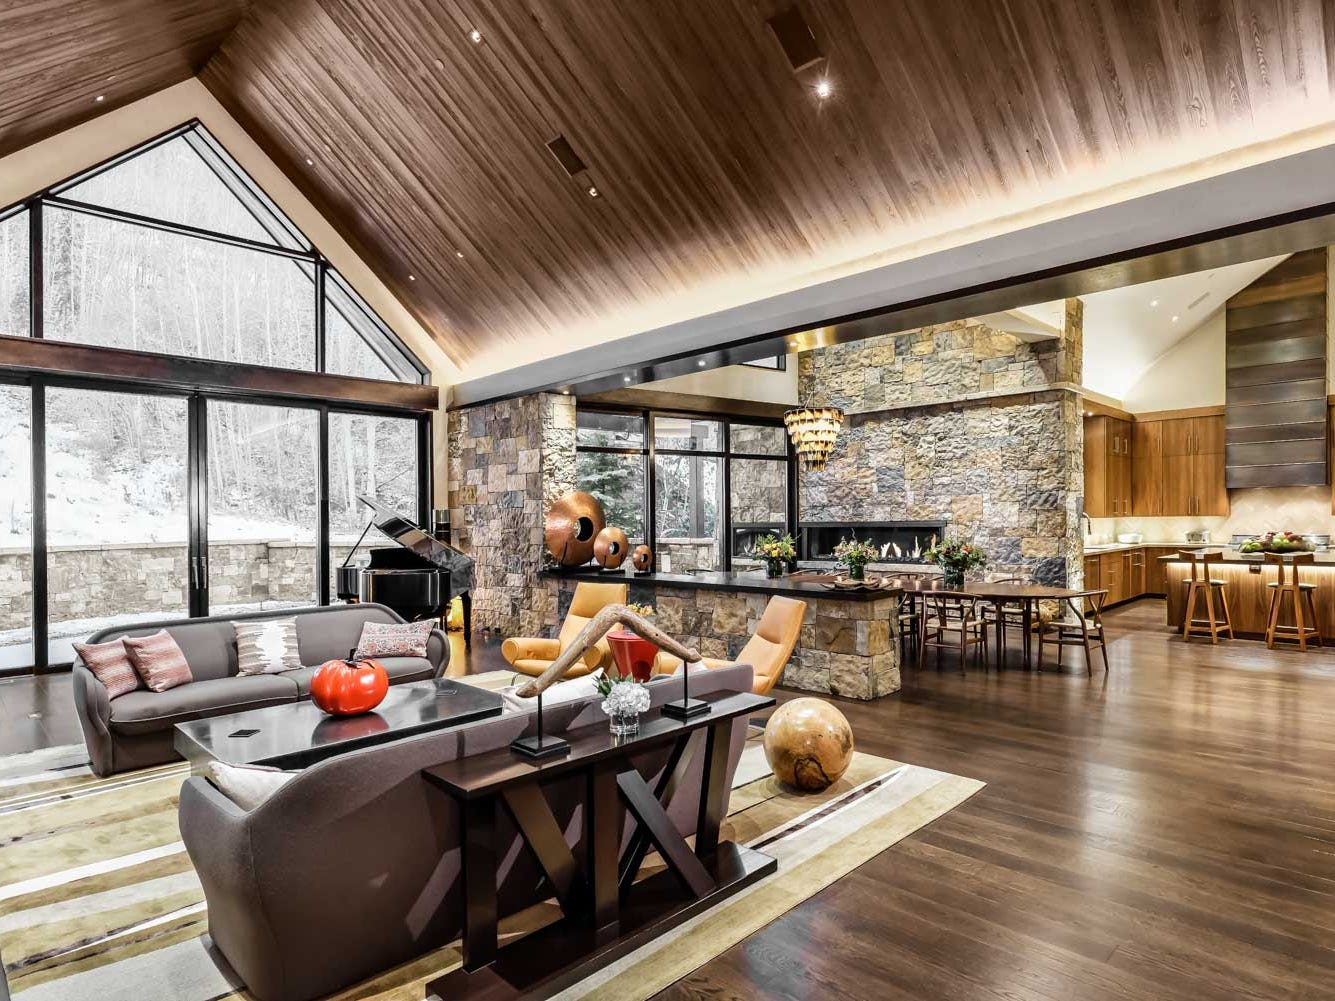 For more information: https://www.luxuryretreats.com/vacation-rentals/united-states/colorado-aspen-snowmass/downtown-aspen/top-of-mill-4-123403